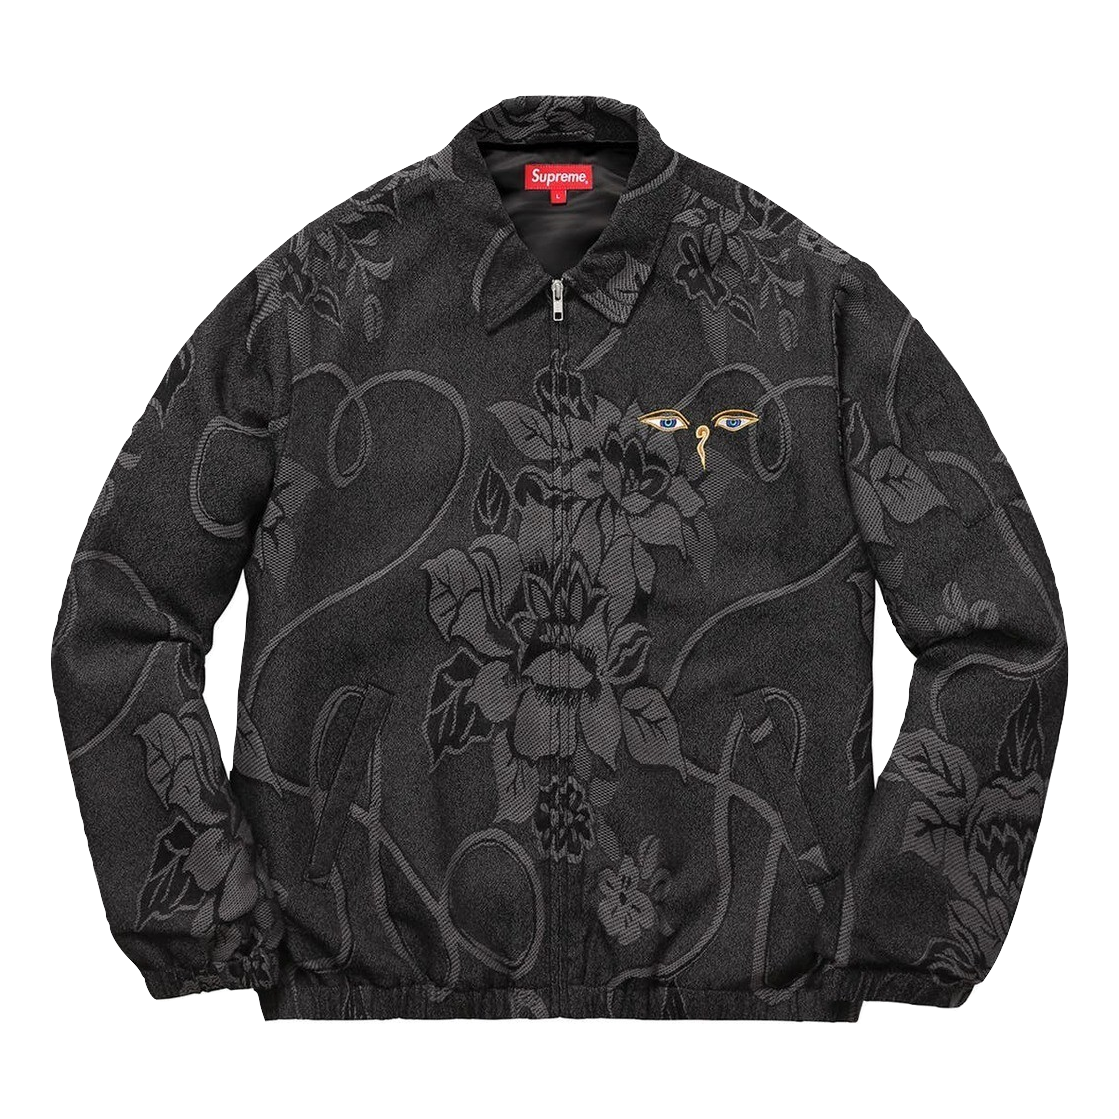 Supreme Truth Tour Jacket